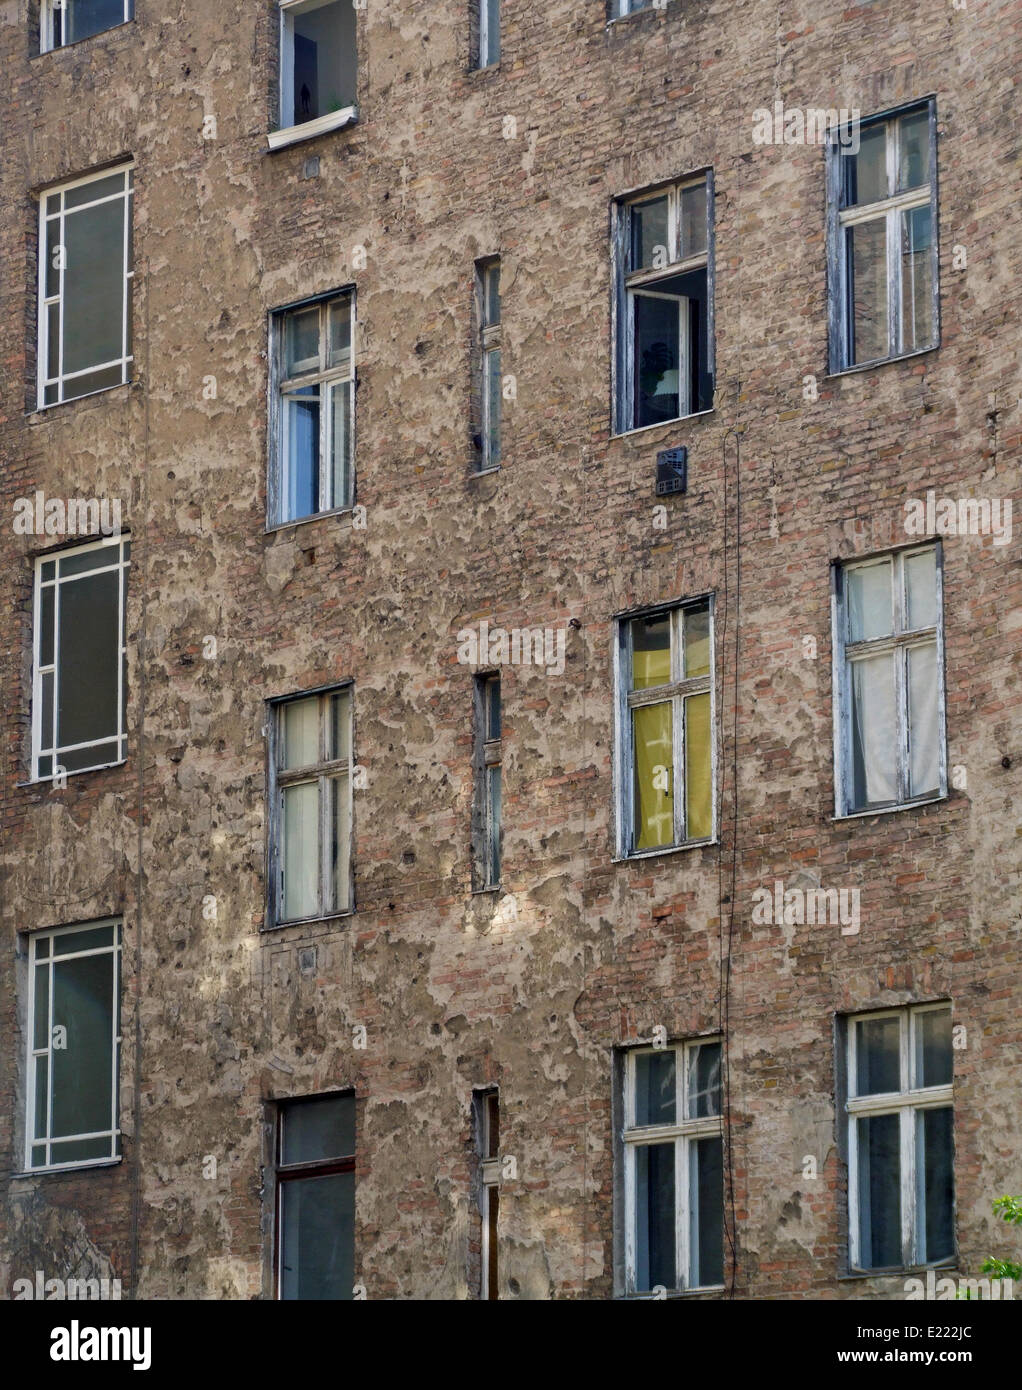 a old building Stock Photo